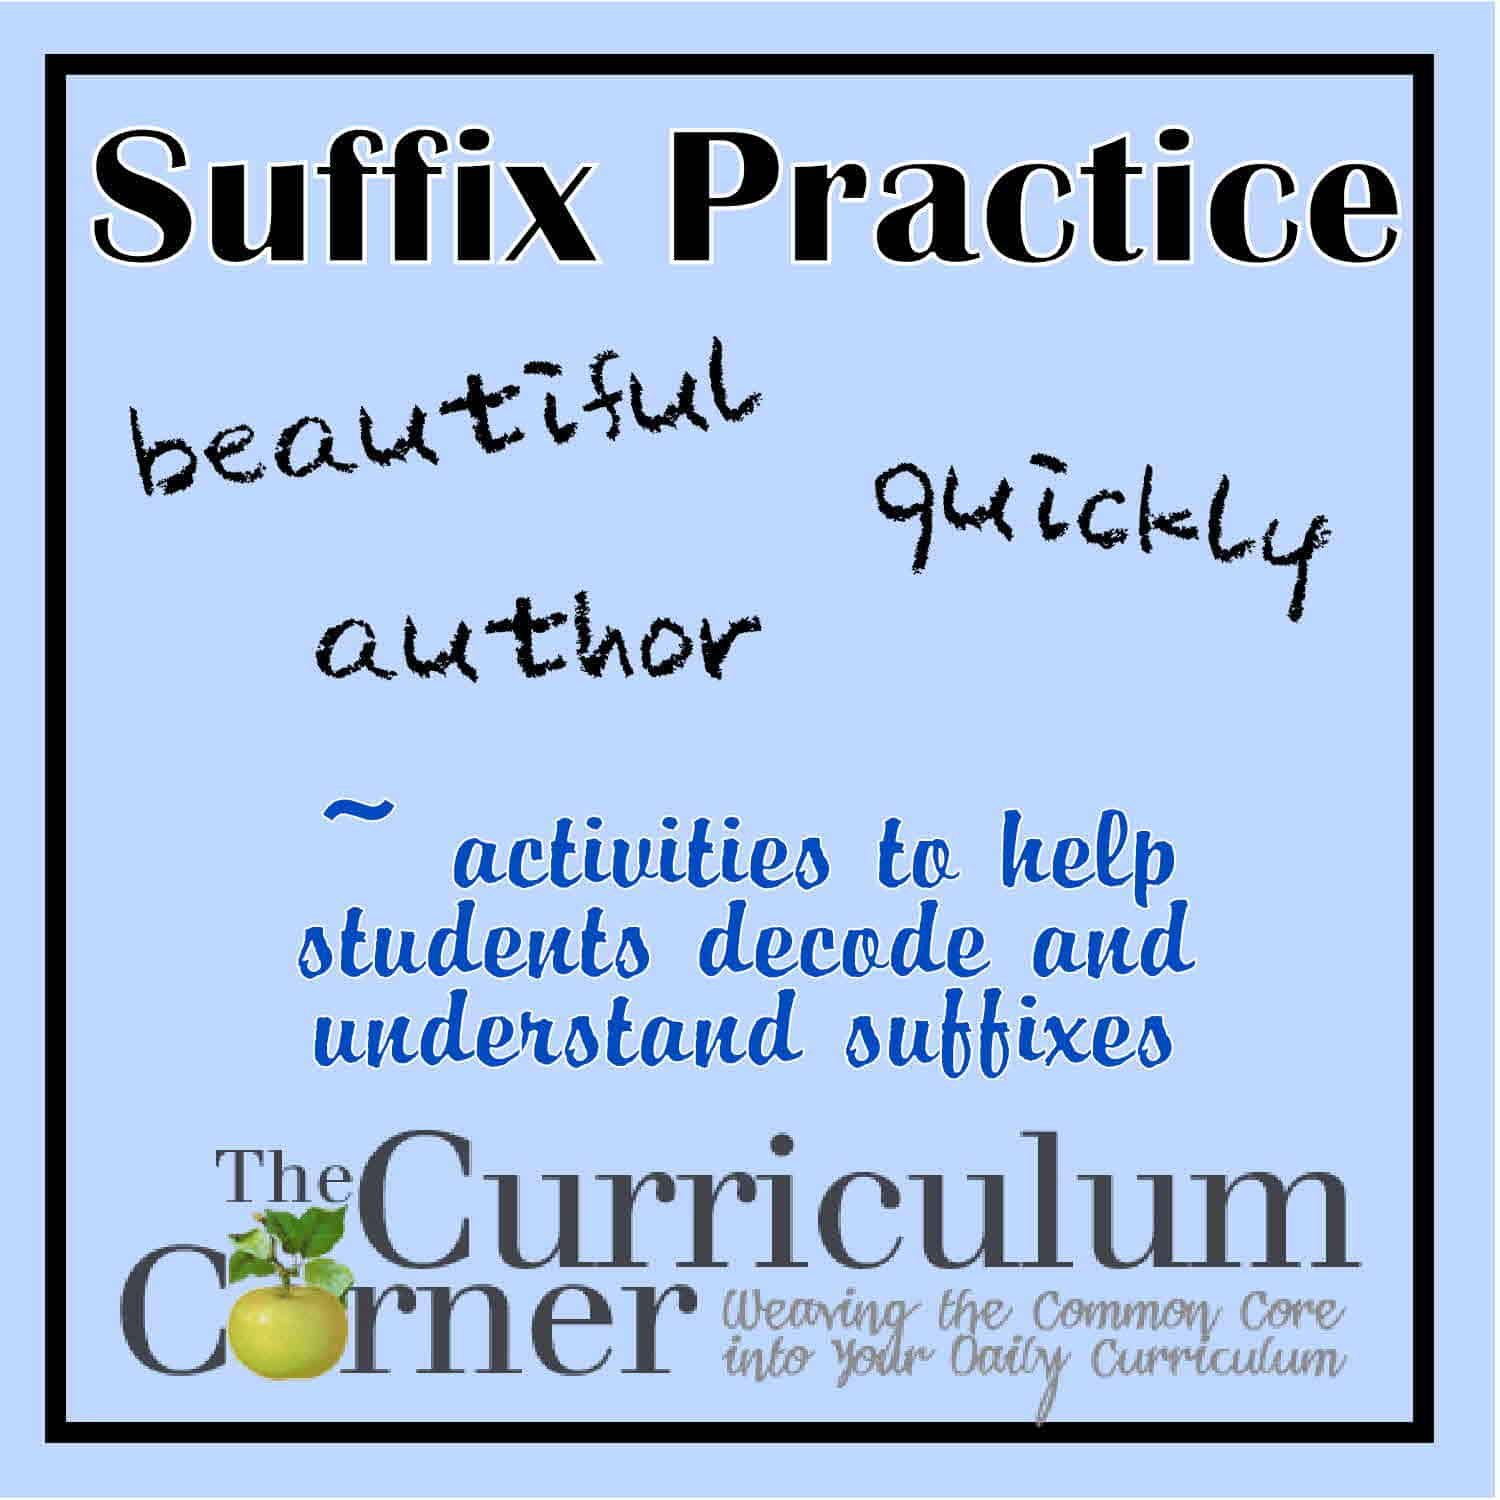 Everything Suffixes